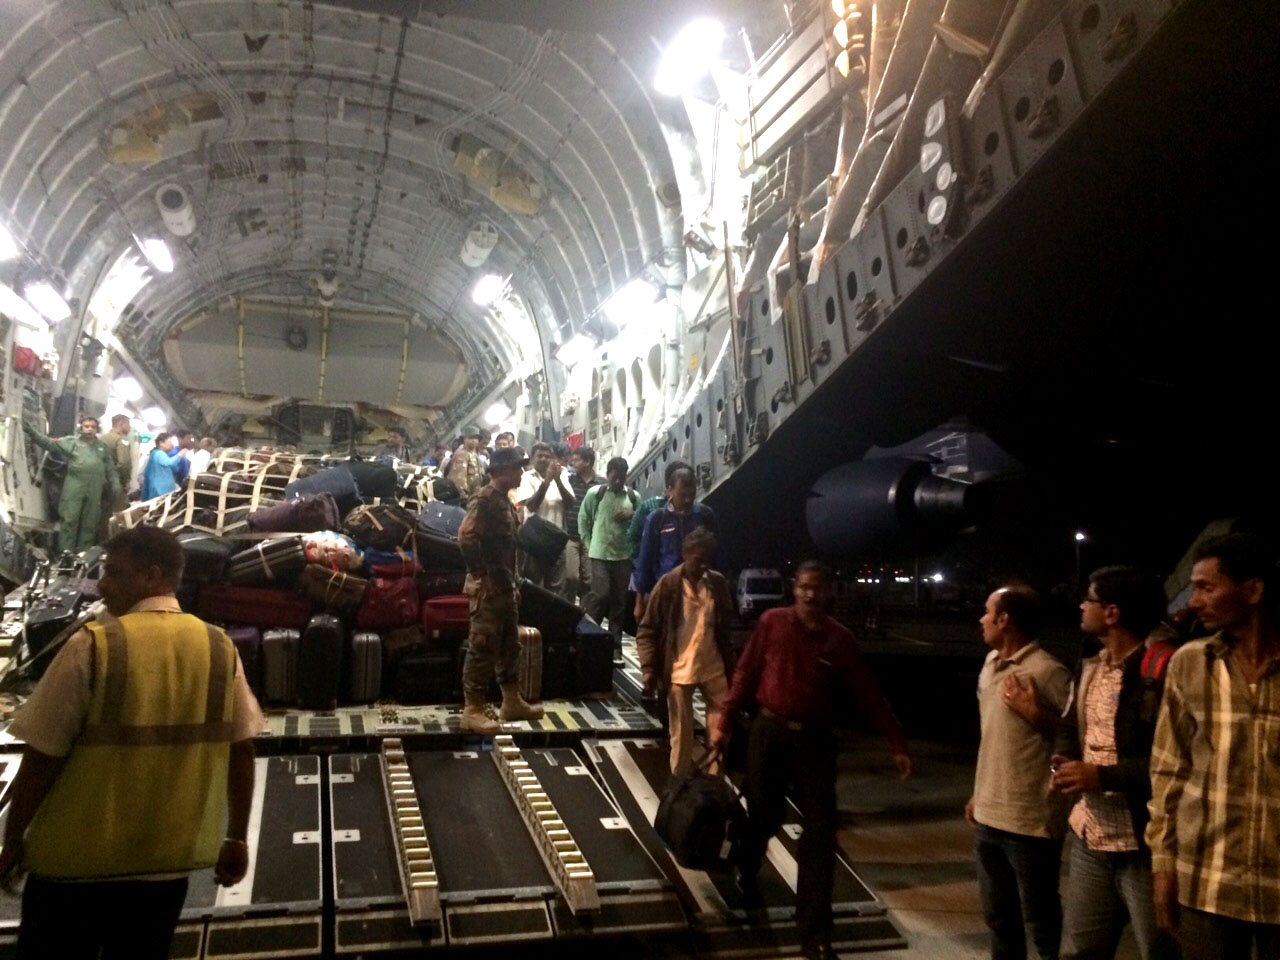 Evacuated men and women from war-torn Yemen walk out of tail-hatch of Indian Air Force transport aircraft on April 02, 2015.